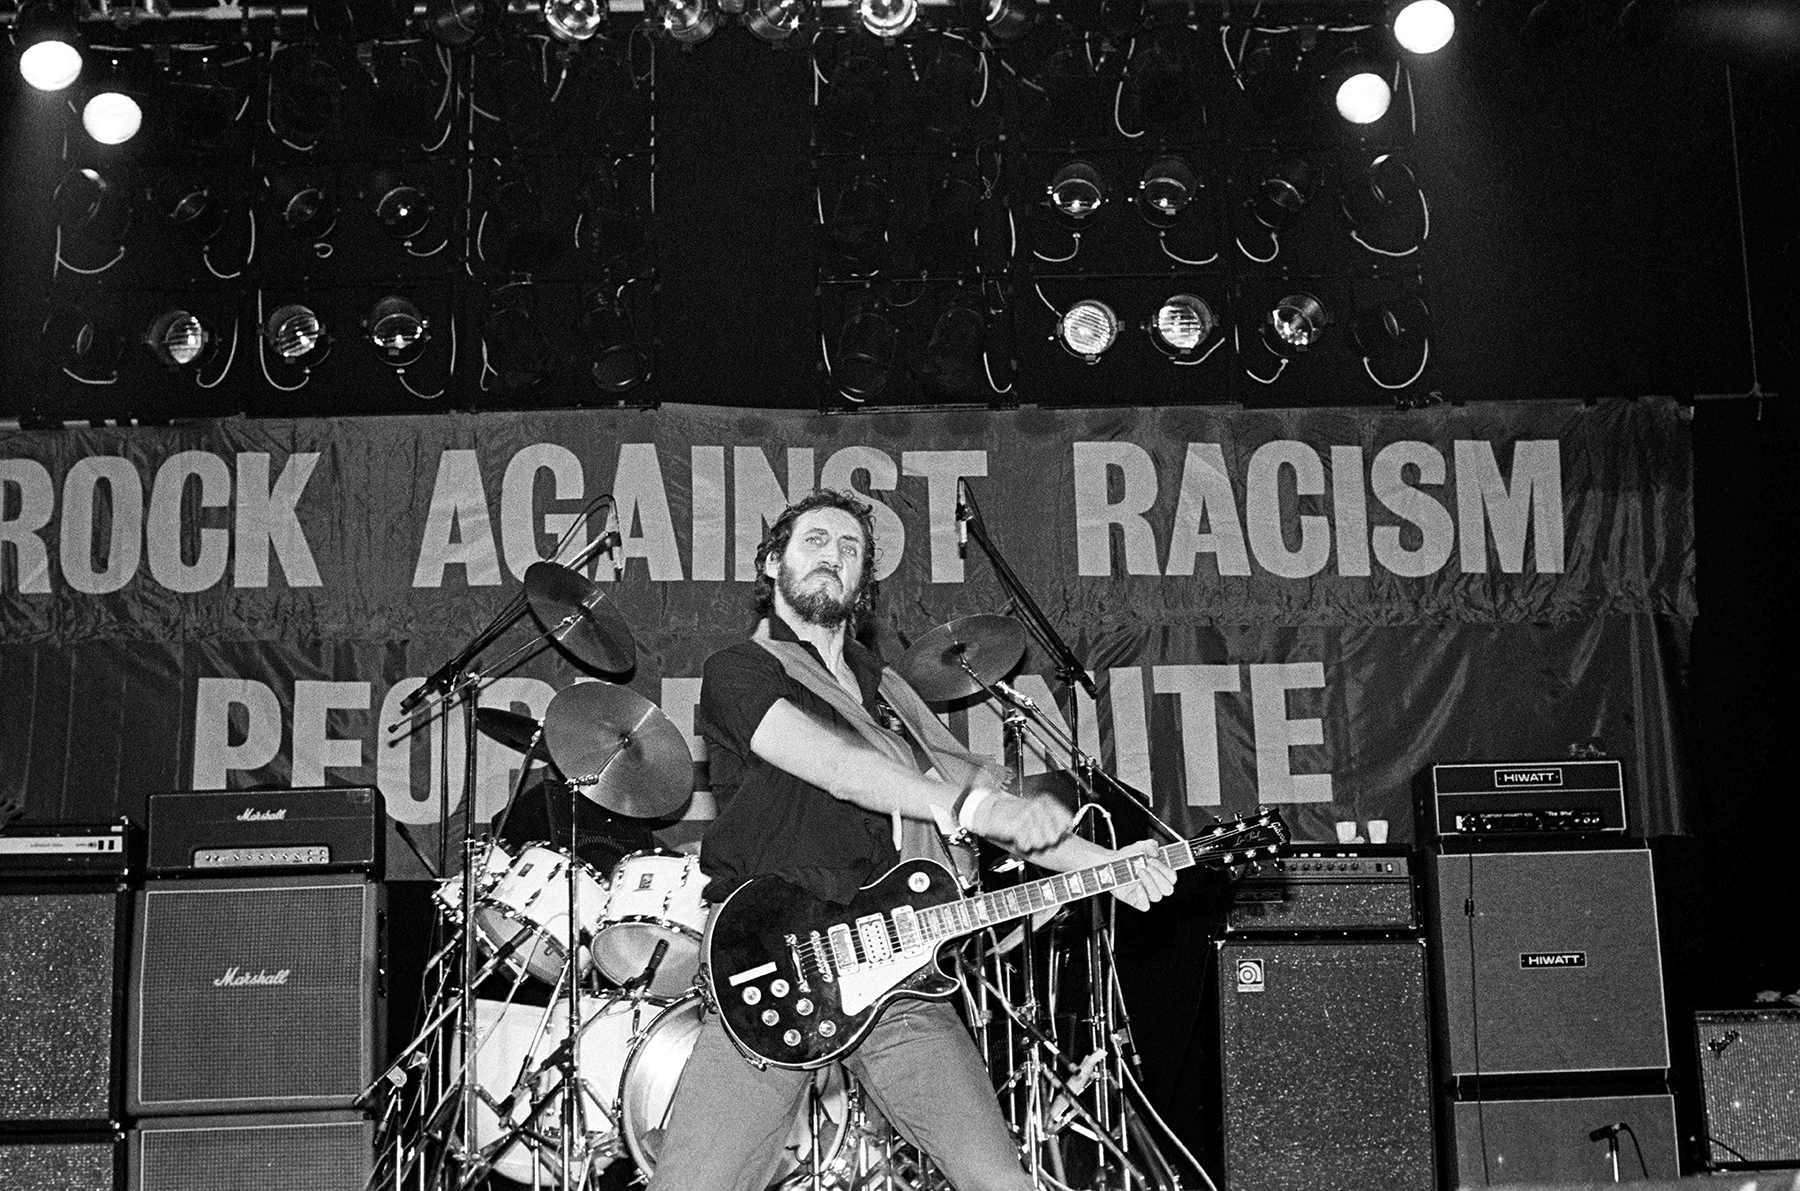 Pete Townshend of The Who, performing at a Rock Against Racism Southall benefit gig, at the Rainbow Theatre, London, 13th July 1979. (Photo by Virginia Turbett/Redferns)